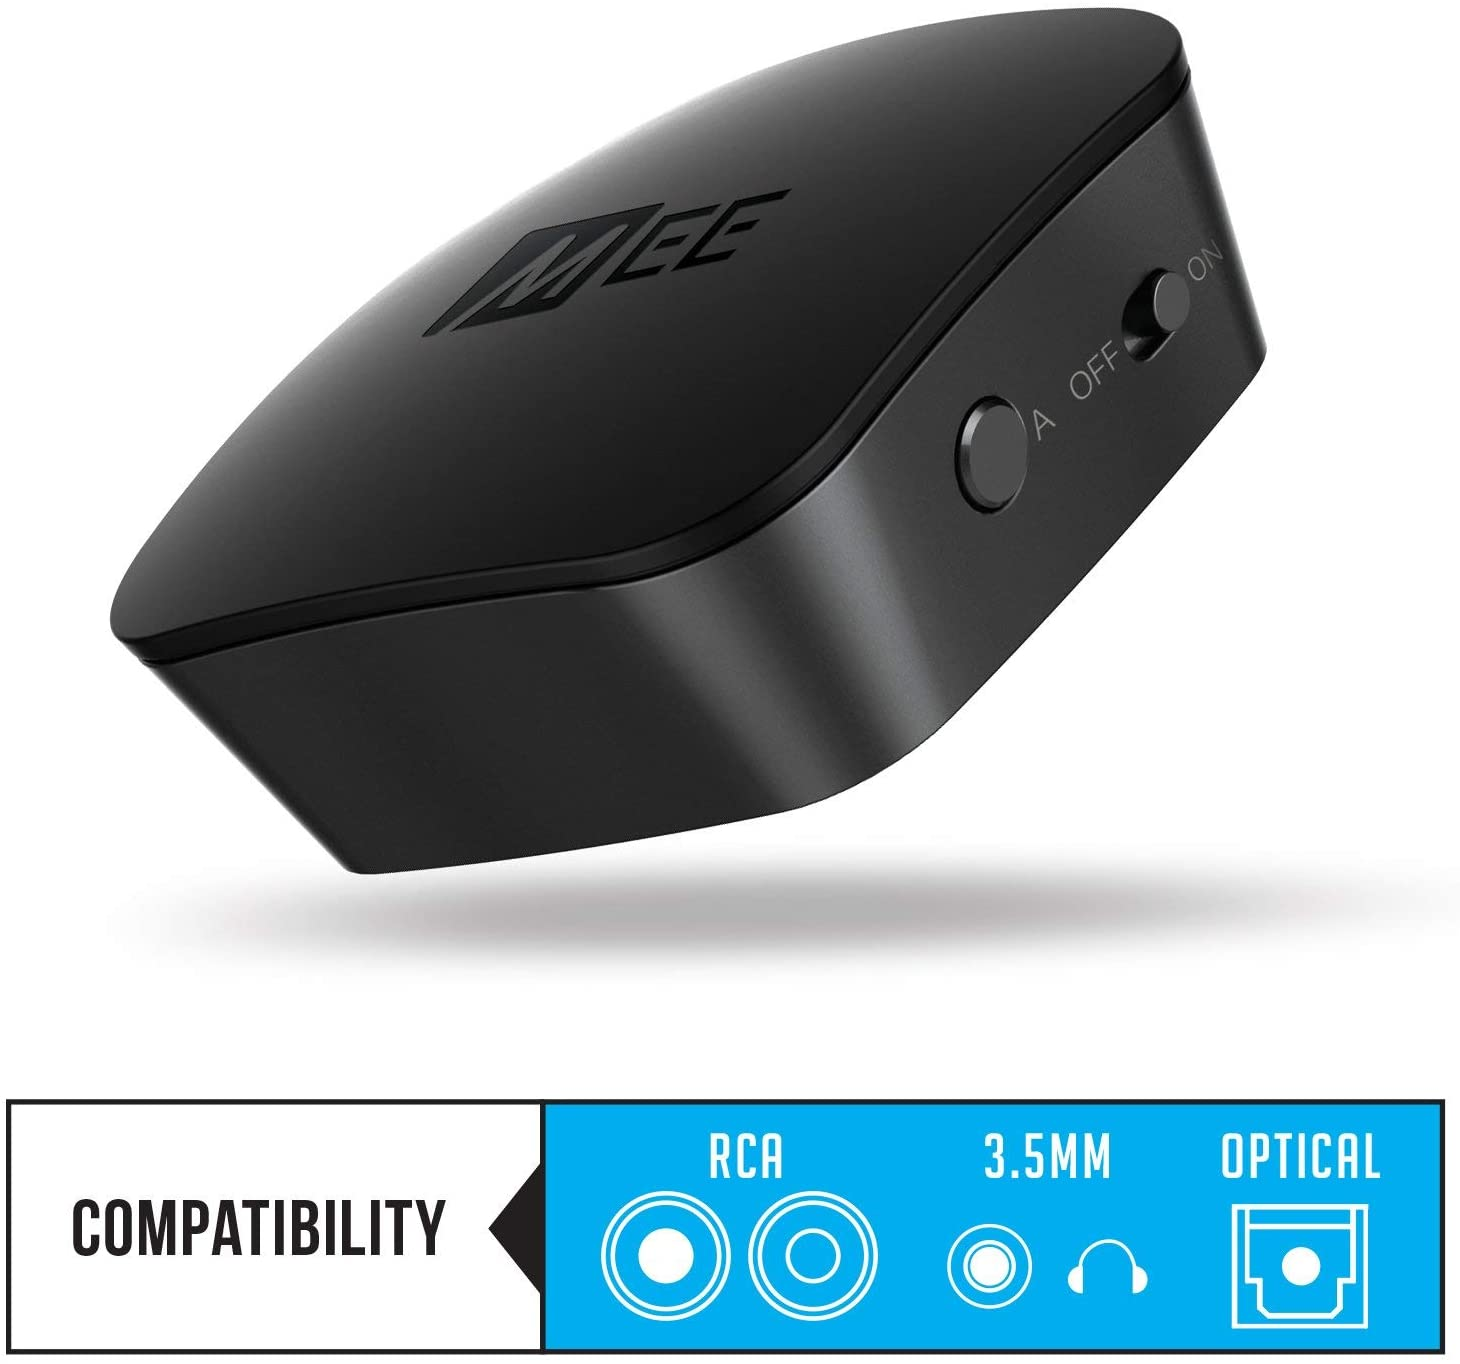 MEE audio Connect universal Bluetooth wireless audio transmitter for up to two headphones / speakers with aptX Low Latency technology for TVs and other devices